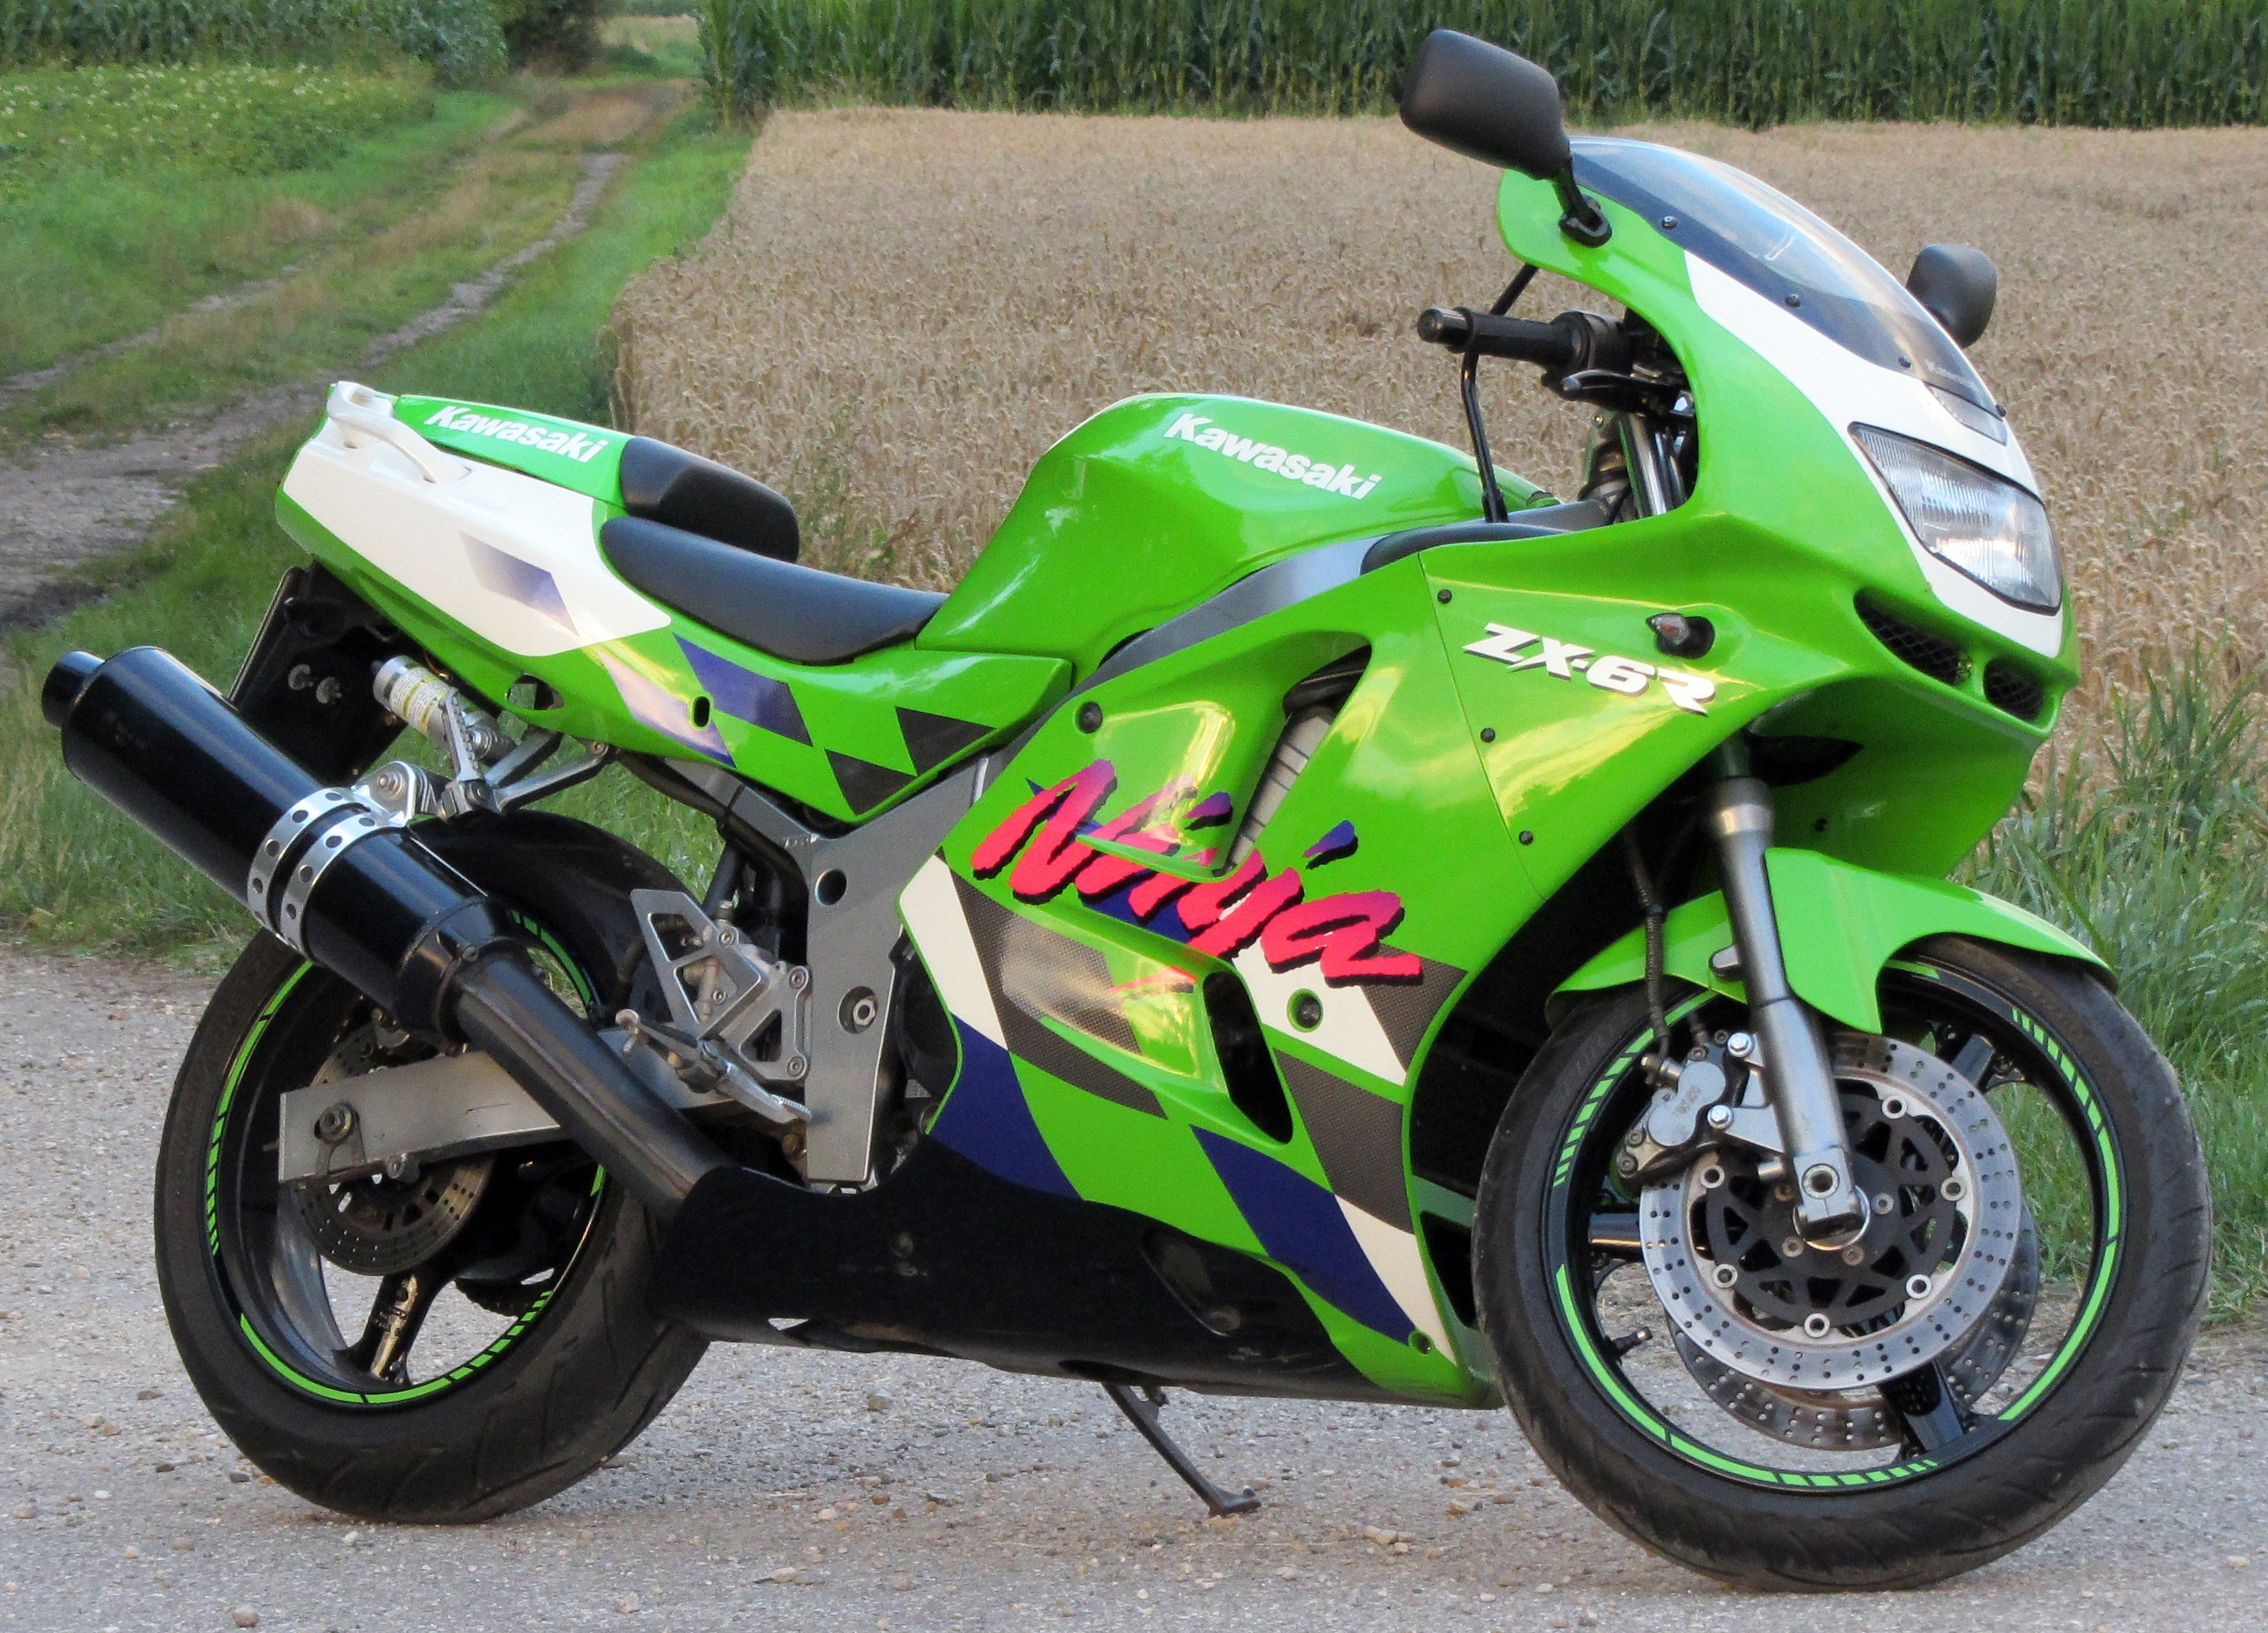 Kawasaki Ninja R For Sale Craigslist